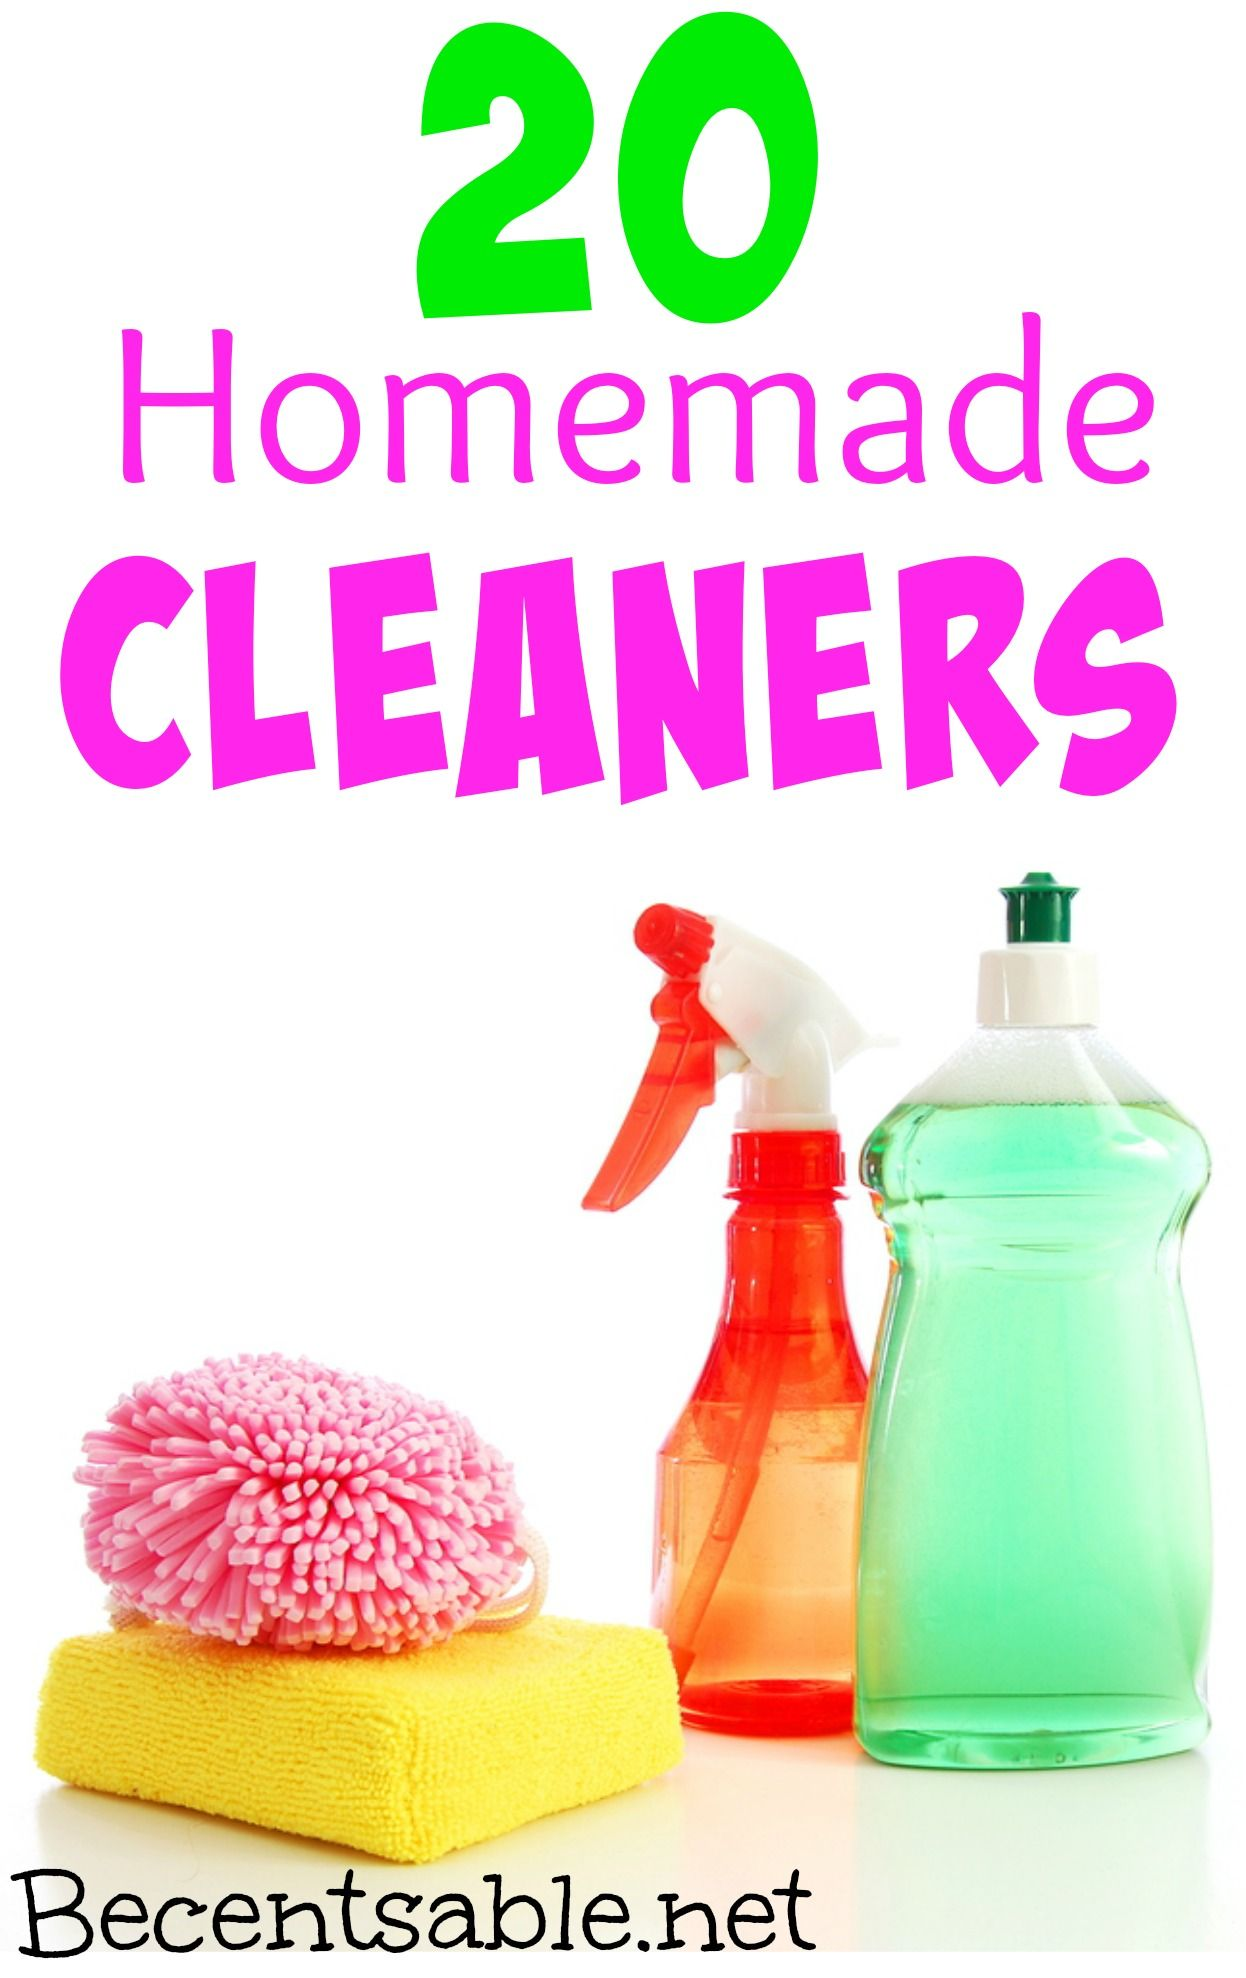 20 homemade cleaners cleaner recipes cleaners homemade